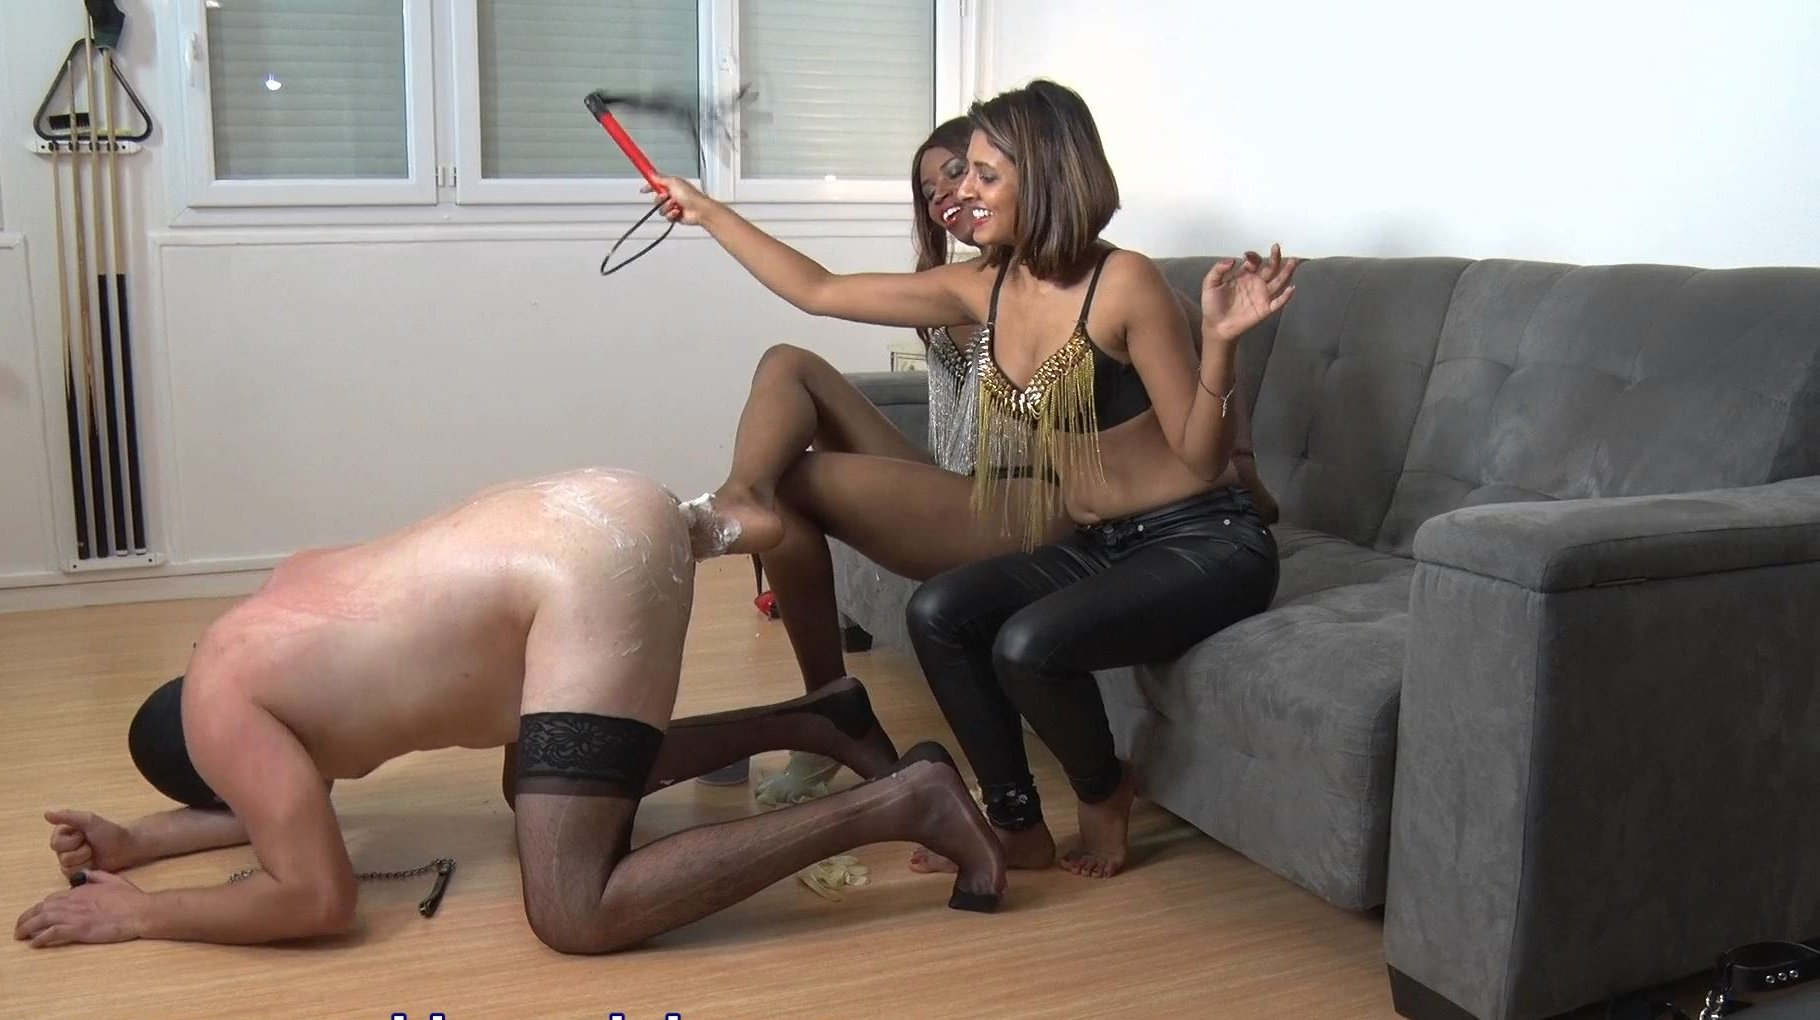 GODDESS ANAIS, GODDESS JADE In Scene: BIGGER IS BETTER - YOUNG GODDESS LAND - FULL HD/1080p/MP4